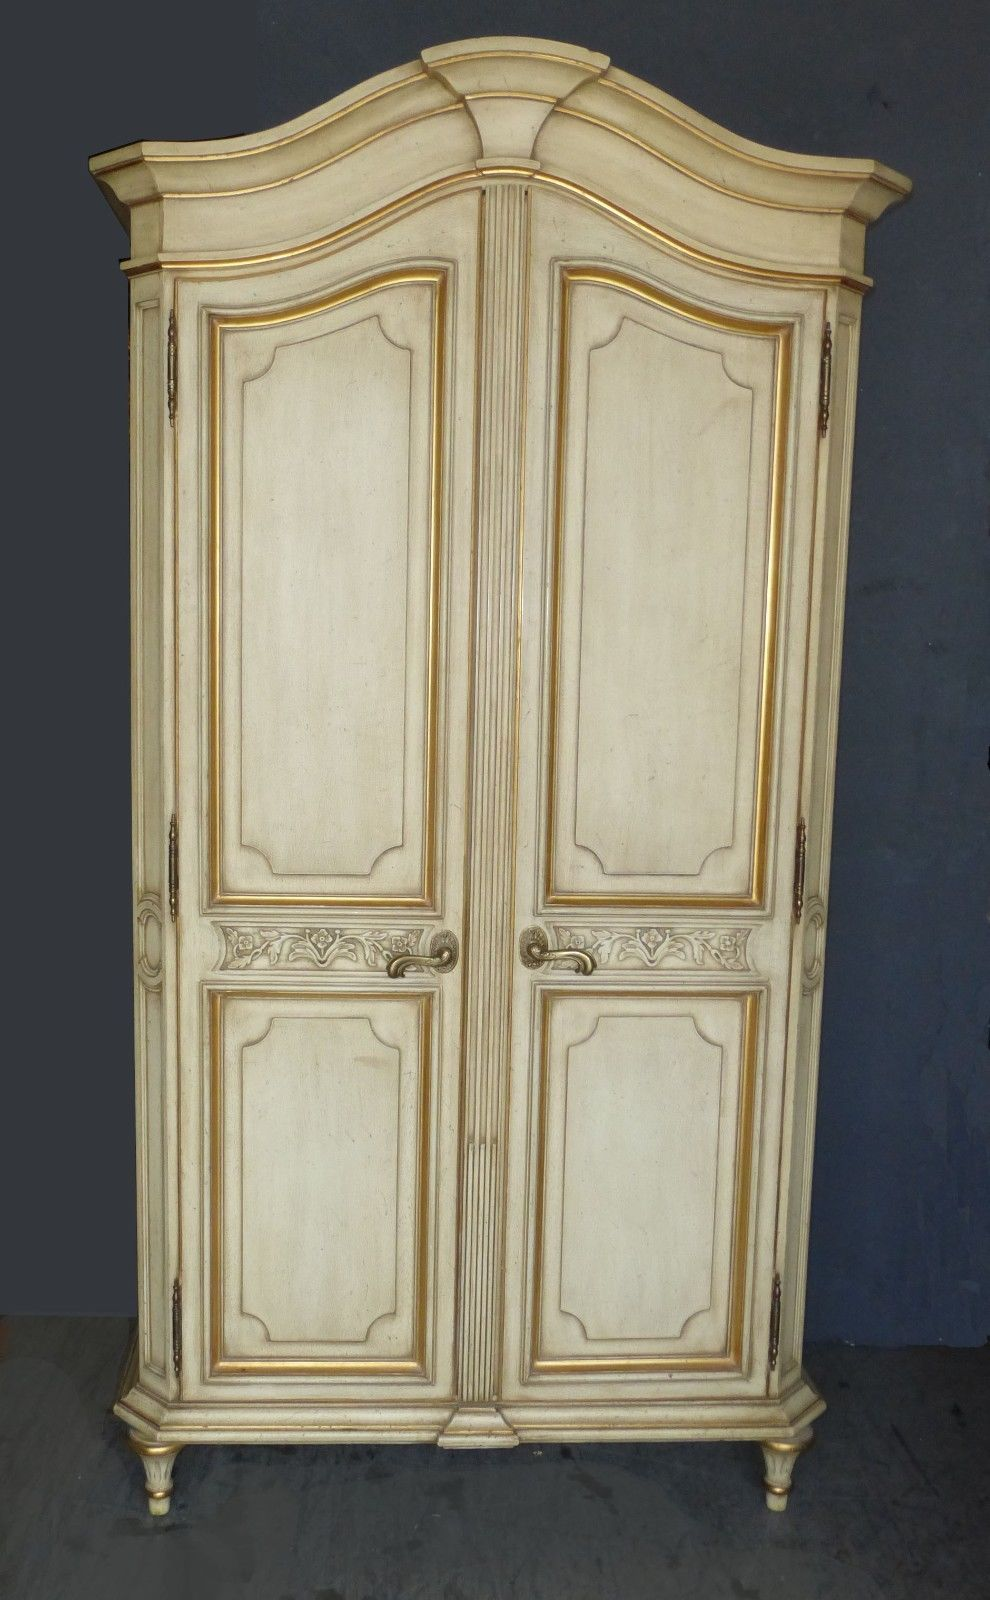 1VTG French Country Provincial Karges Cream Gold Gilt Armoire Wardrobe  Cabinet | EBay